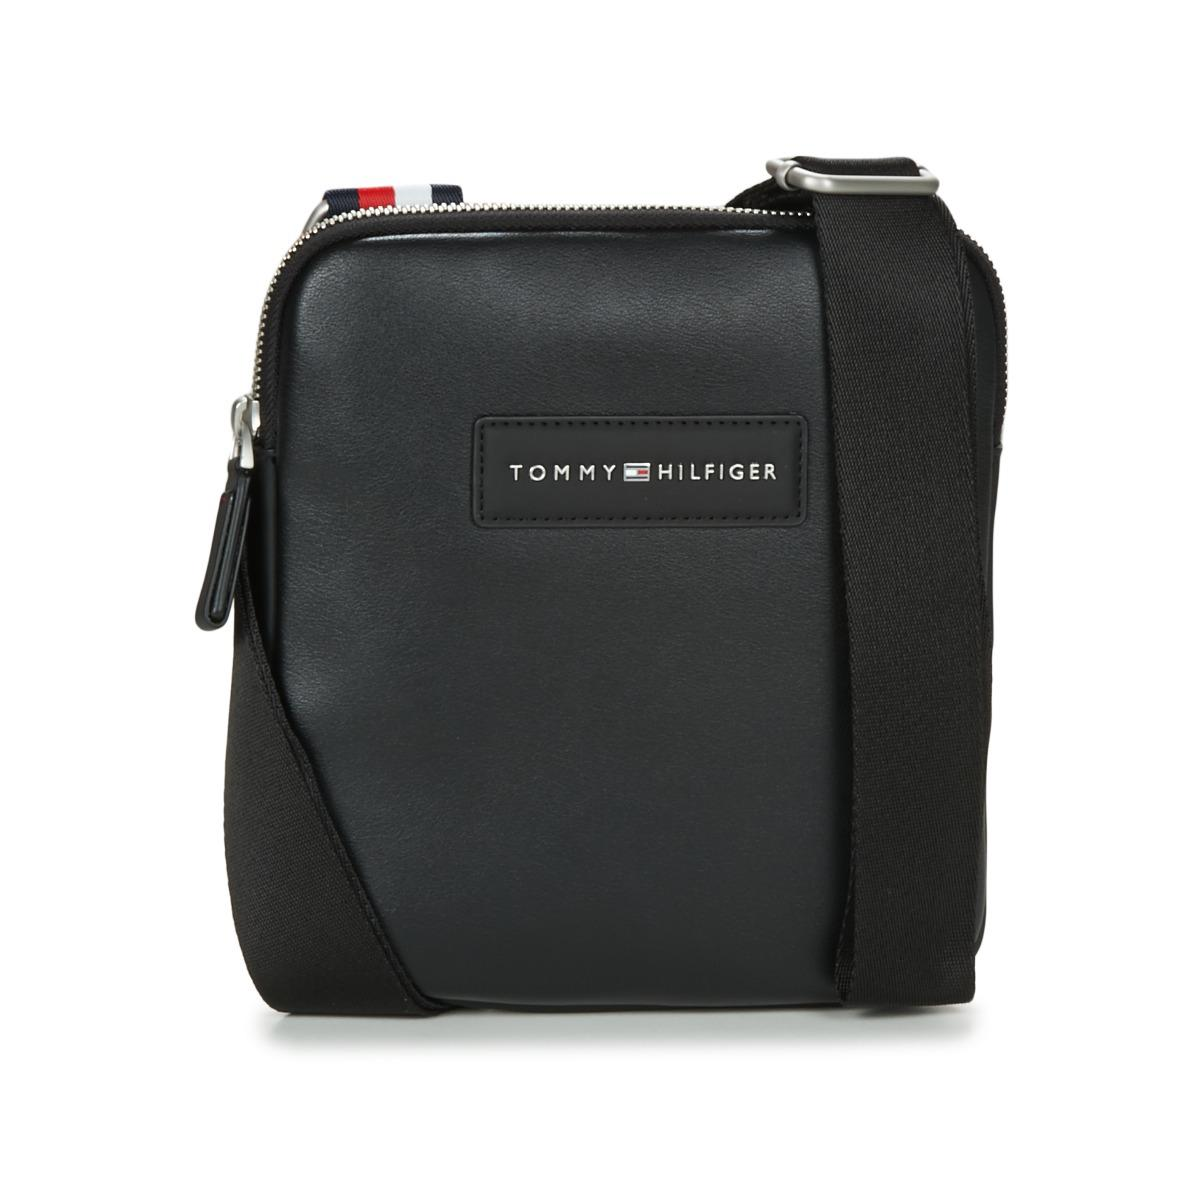 Tommy Hilfiger Th City Crossbody Men S Pouch In Black In Black For